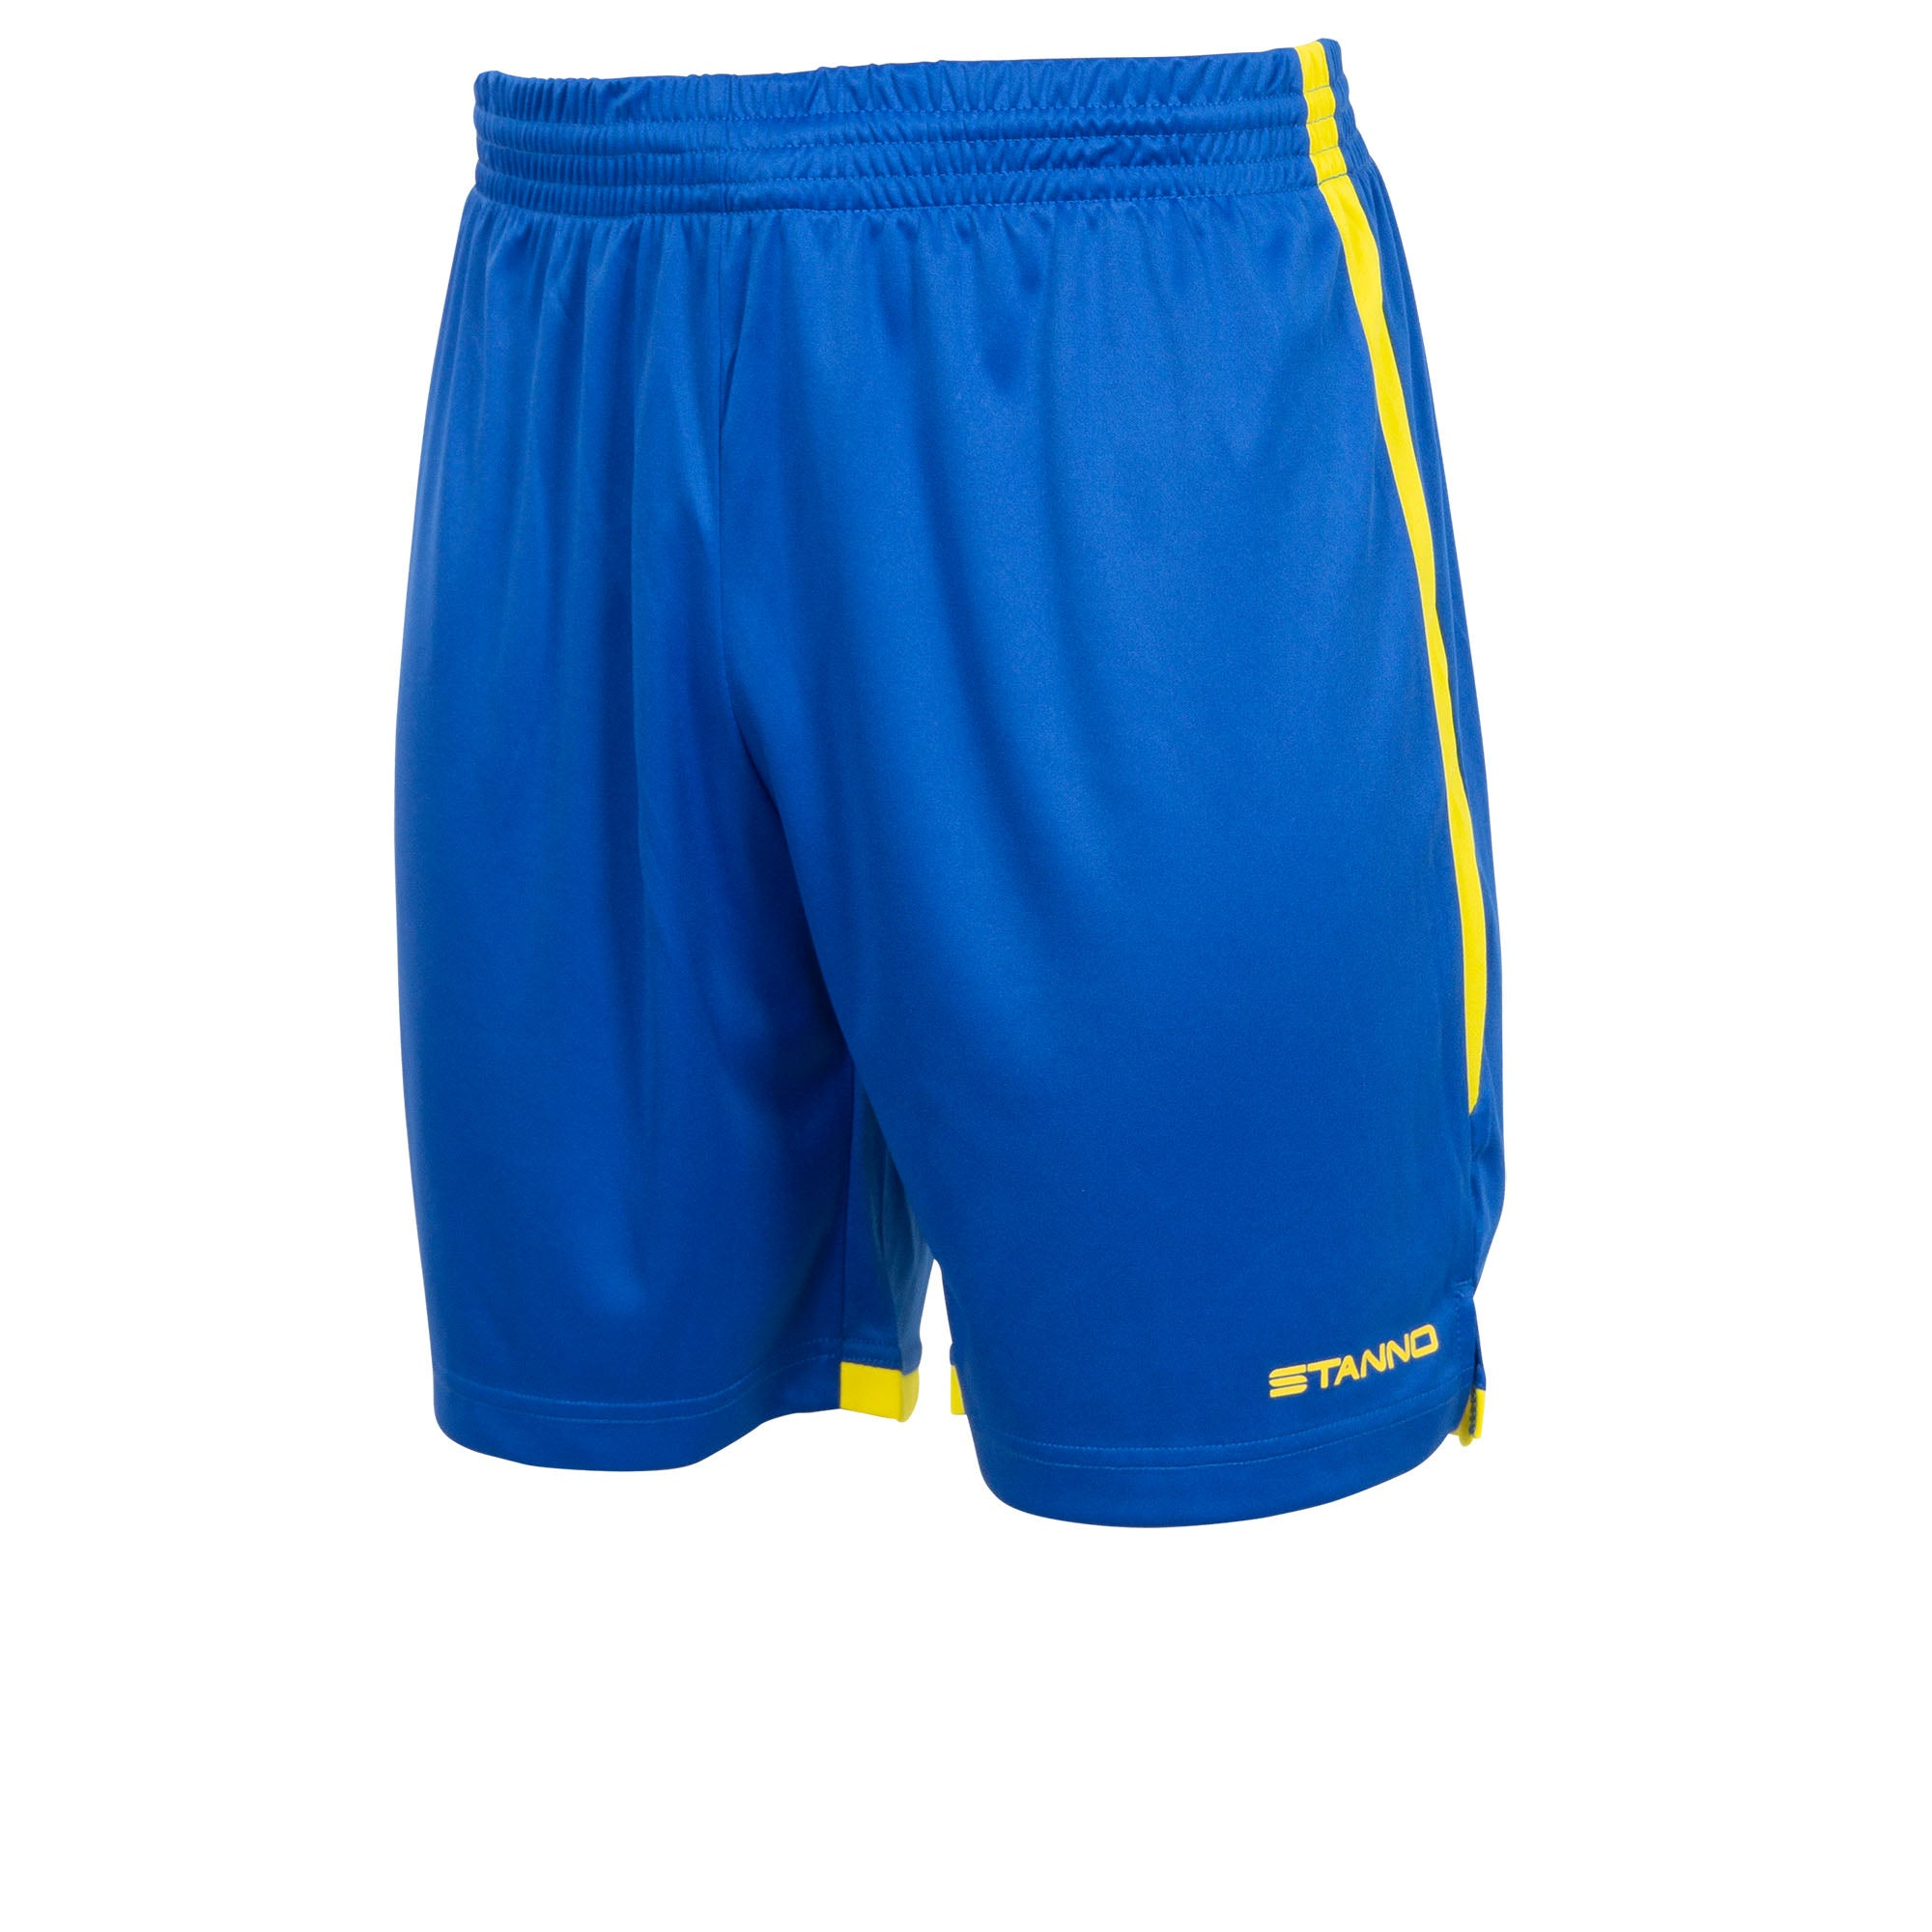 Stanno Focus short in royal blue with yellow contrast trim down side of the leg, and Stanno text logo on bottom of the left leg.